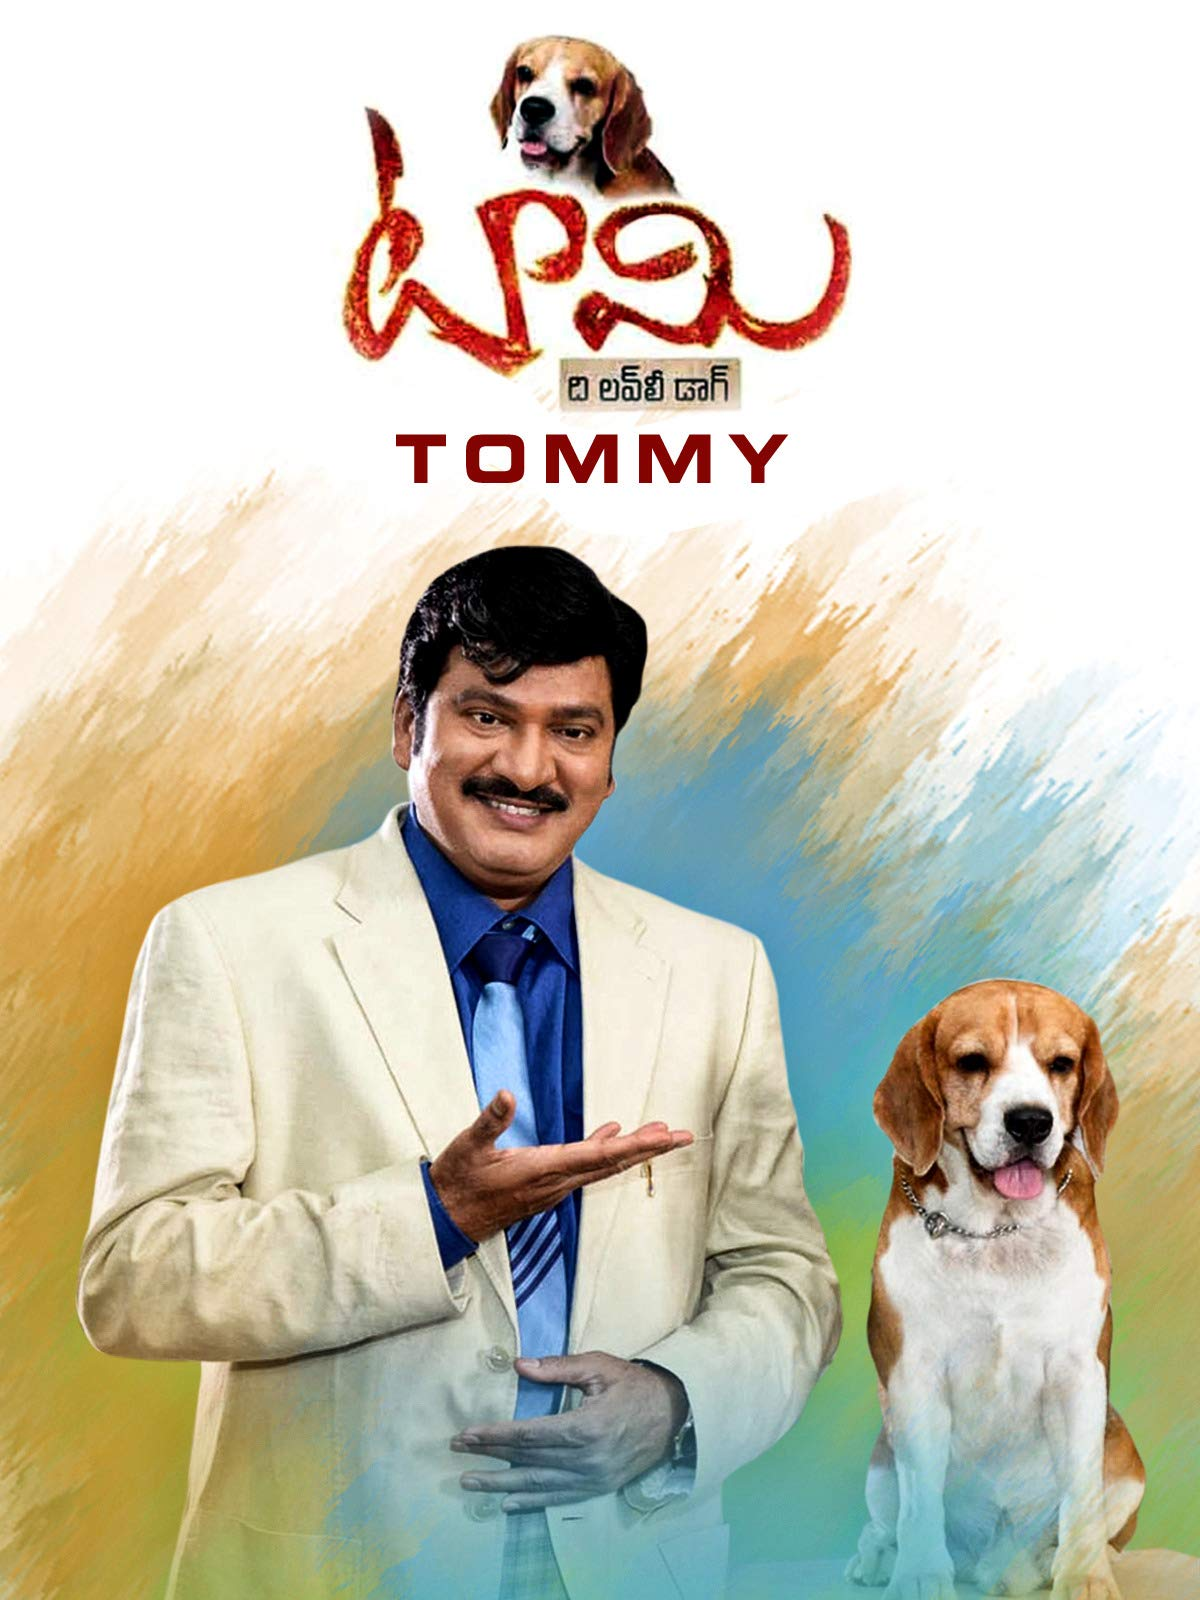 Tommy (2015 film)